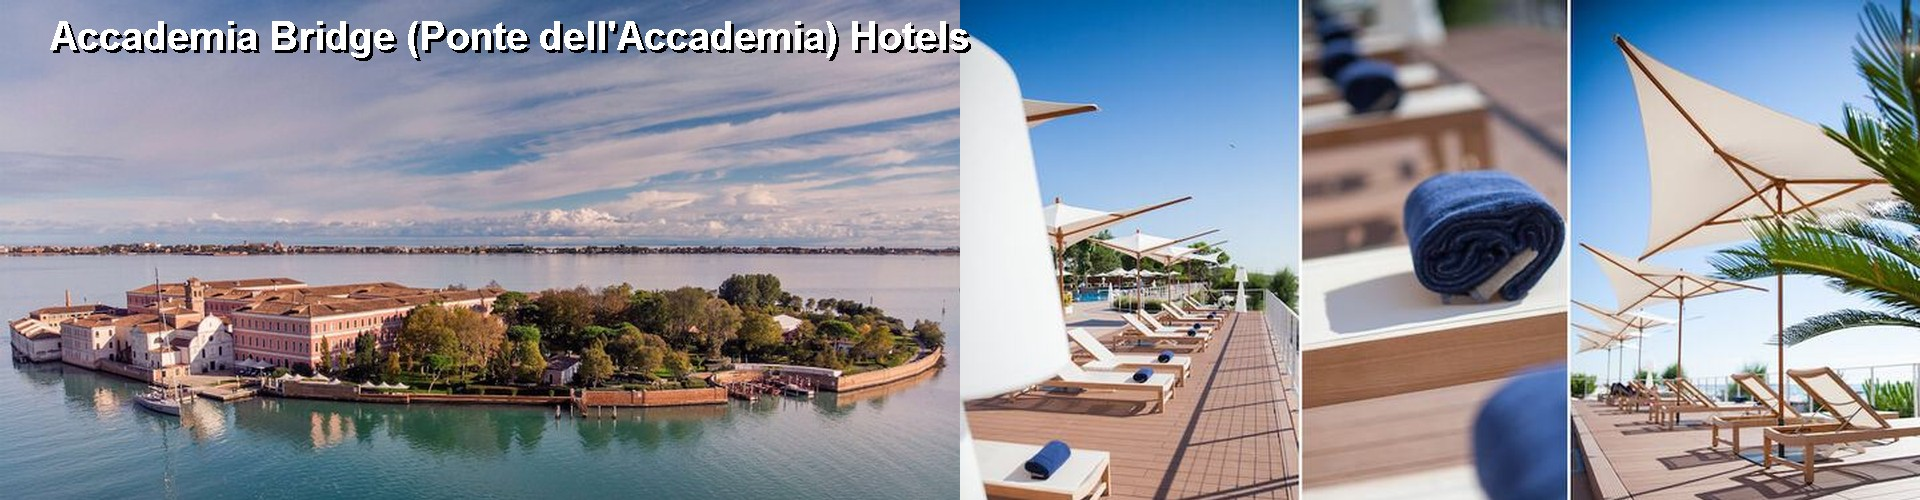 5 Best Hotels near Accademia Bridge (Ponte dell'Accademia)